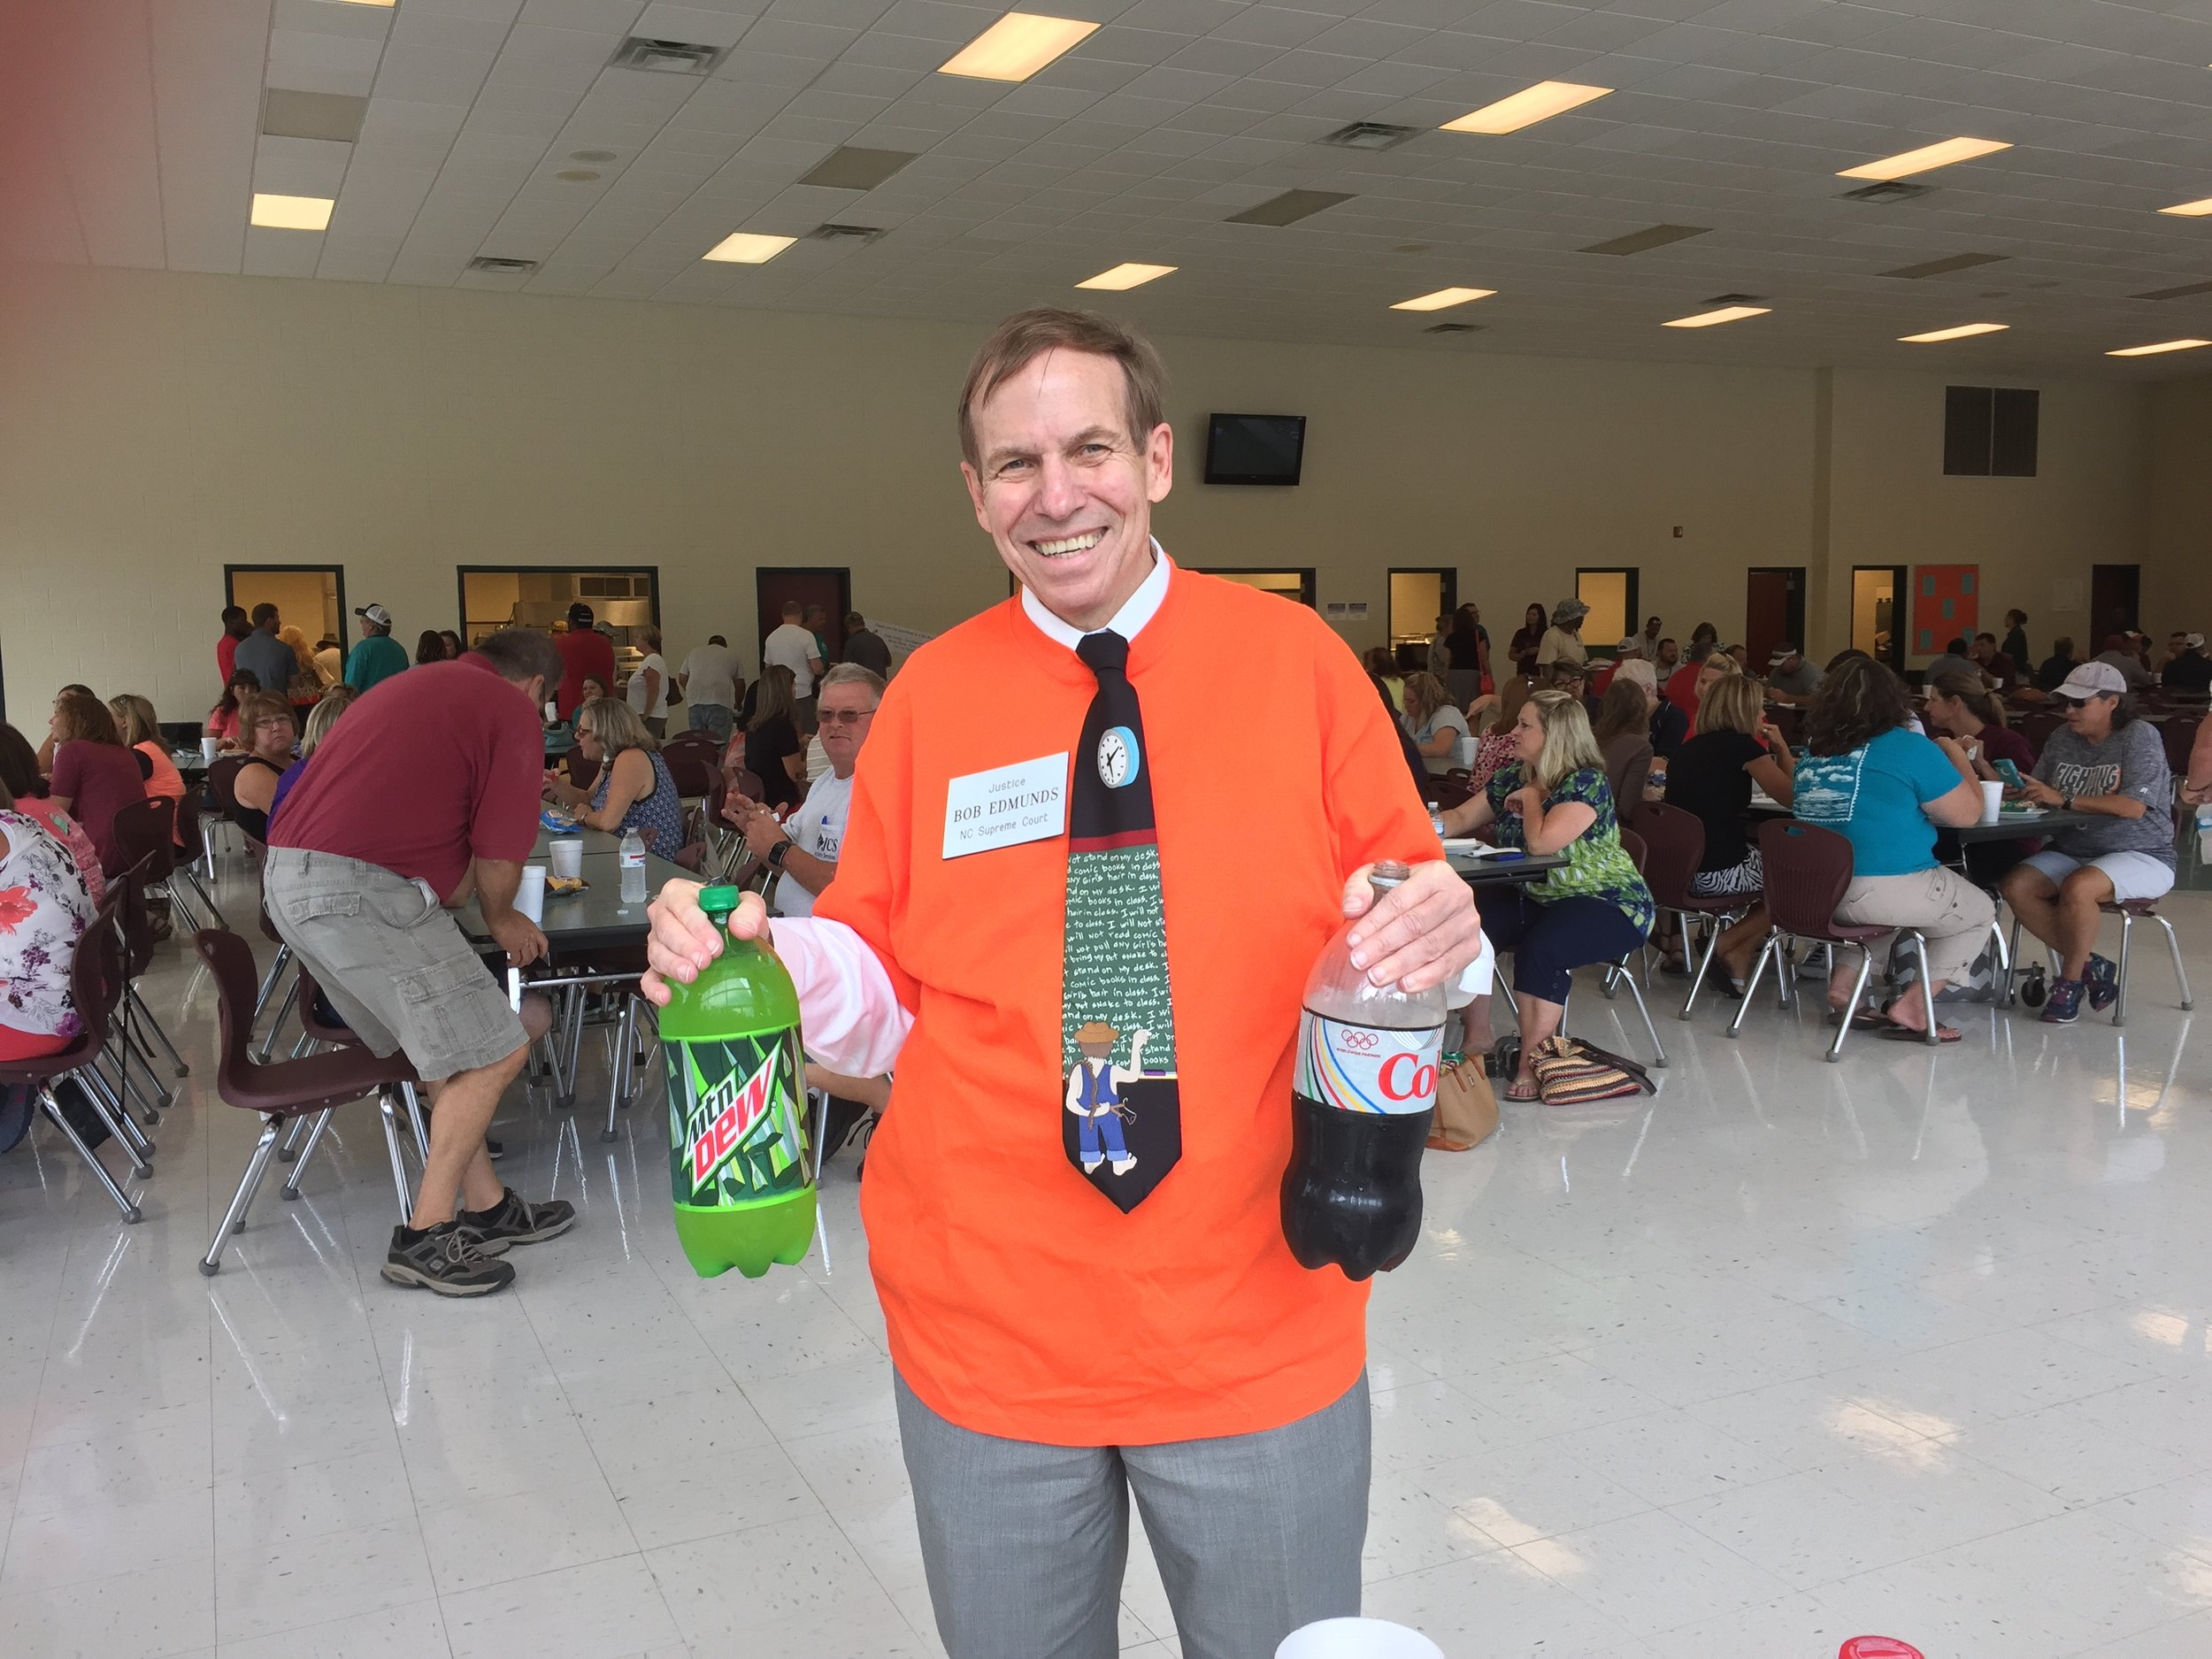 Volunteering to serve at the Johnston County Teacher Appreciation Day lunch, August 24, 2016.